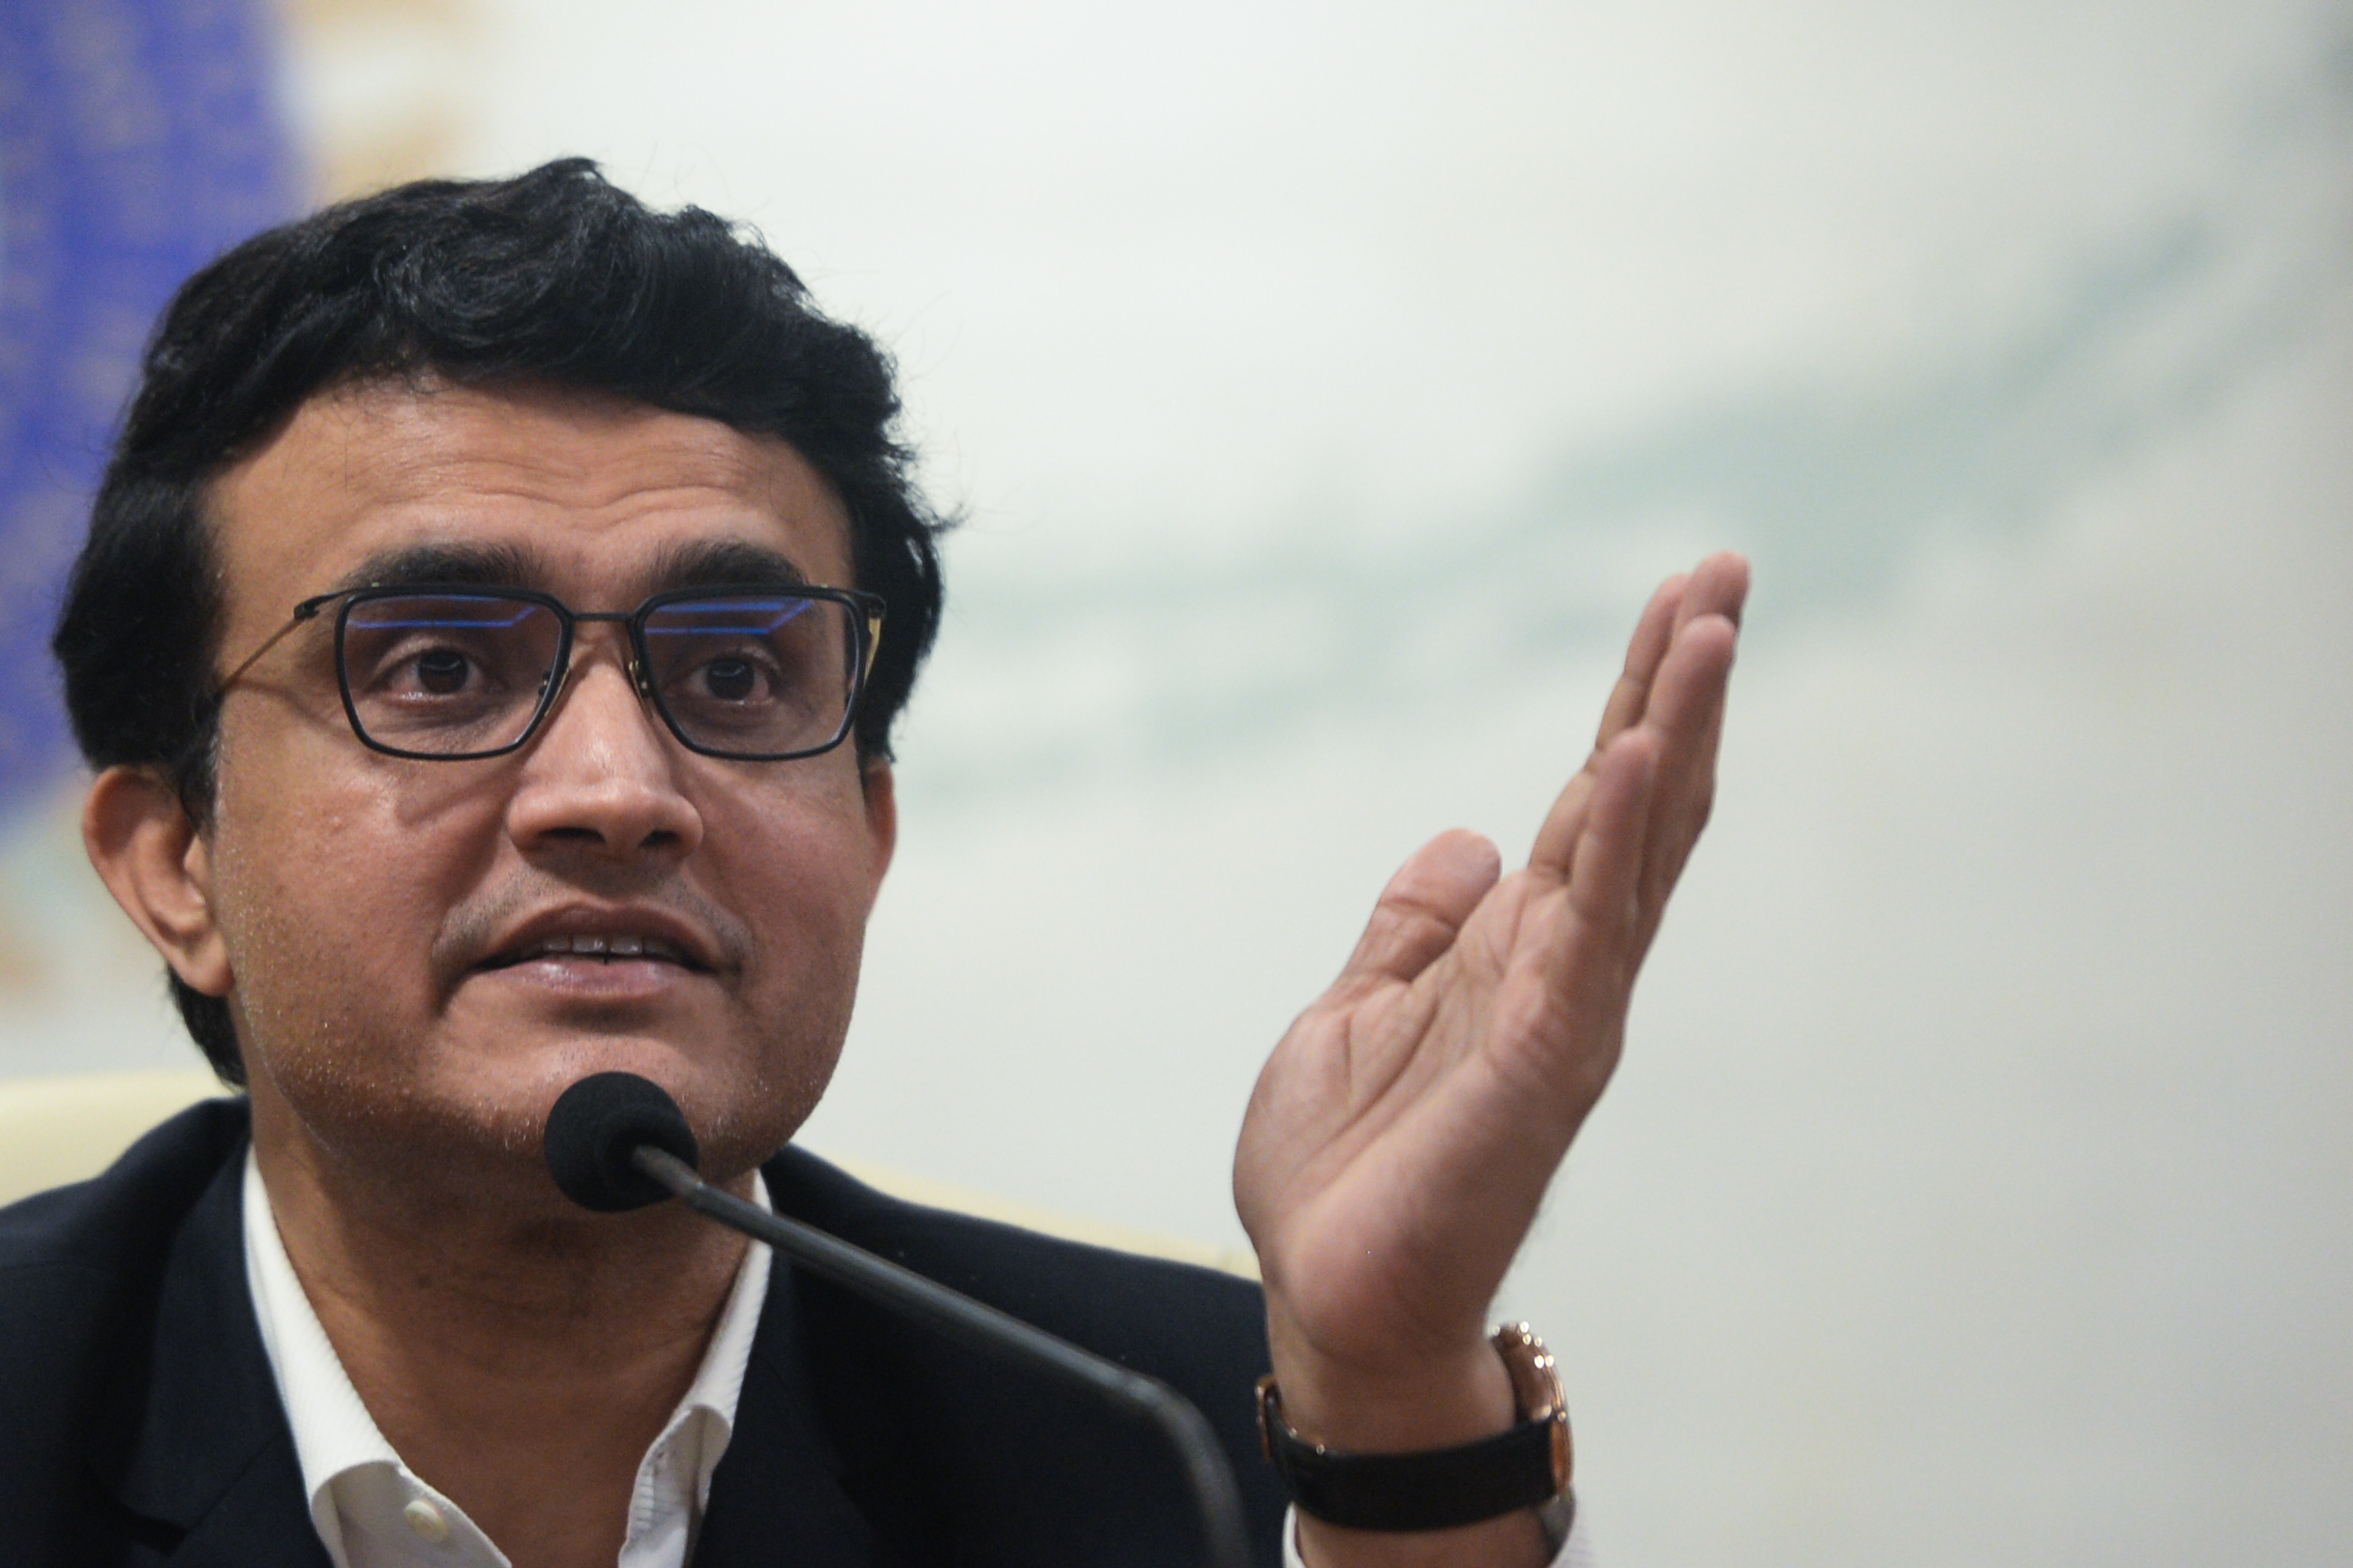 """The fans, franchises, players, broadcasters, sponsors and all other stakeholders are keenly looking forward to the possibility of IPL being hosted this year,"" said BBCI chief Sourav Ganguly.  (File photo: PUNIT PARANJPE/AFP via Getty Images)"